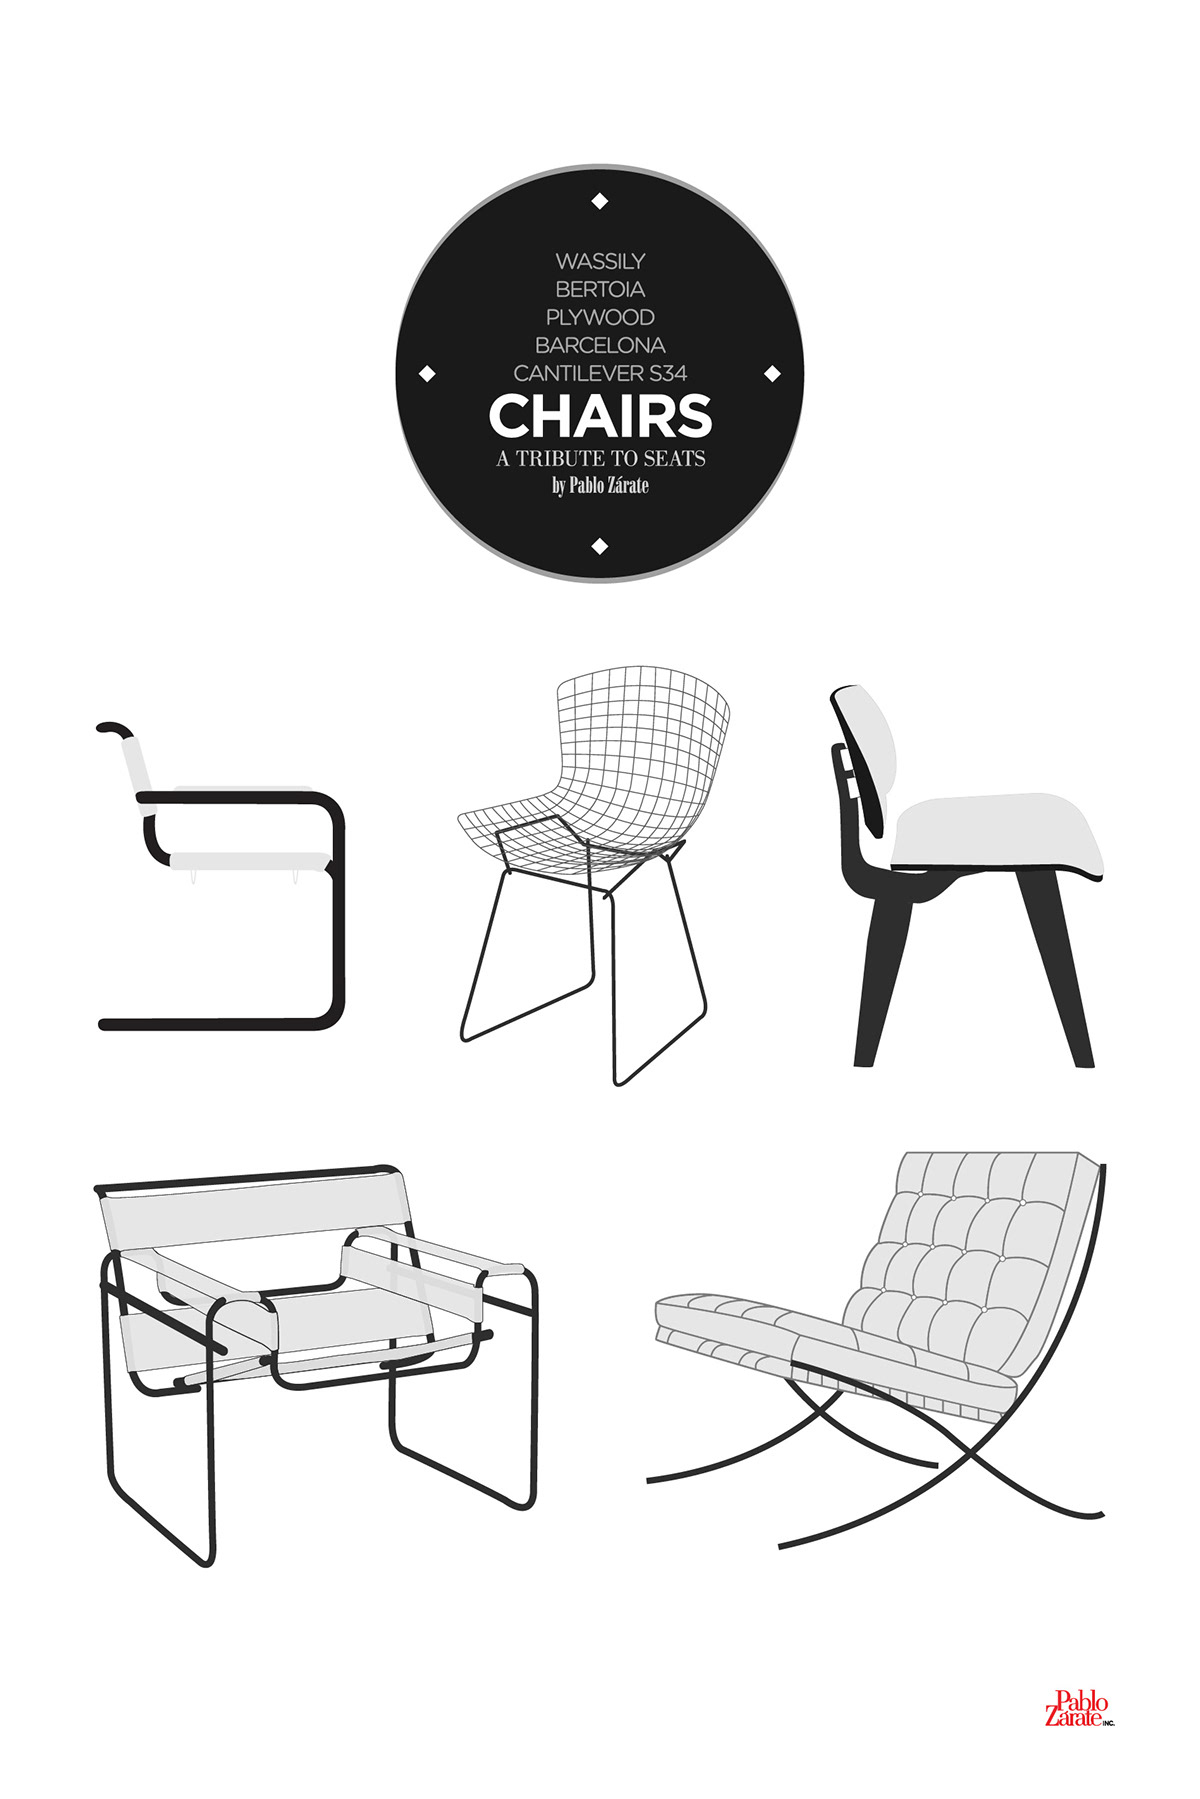 CHAIRS – A tribute to seats